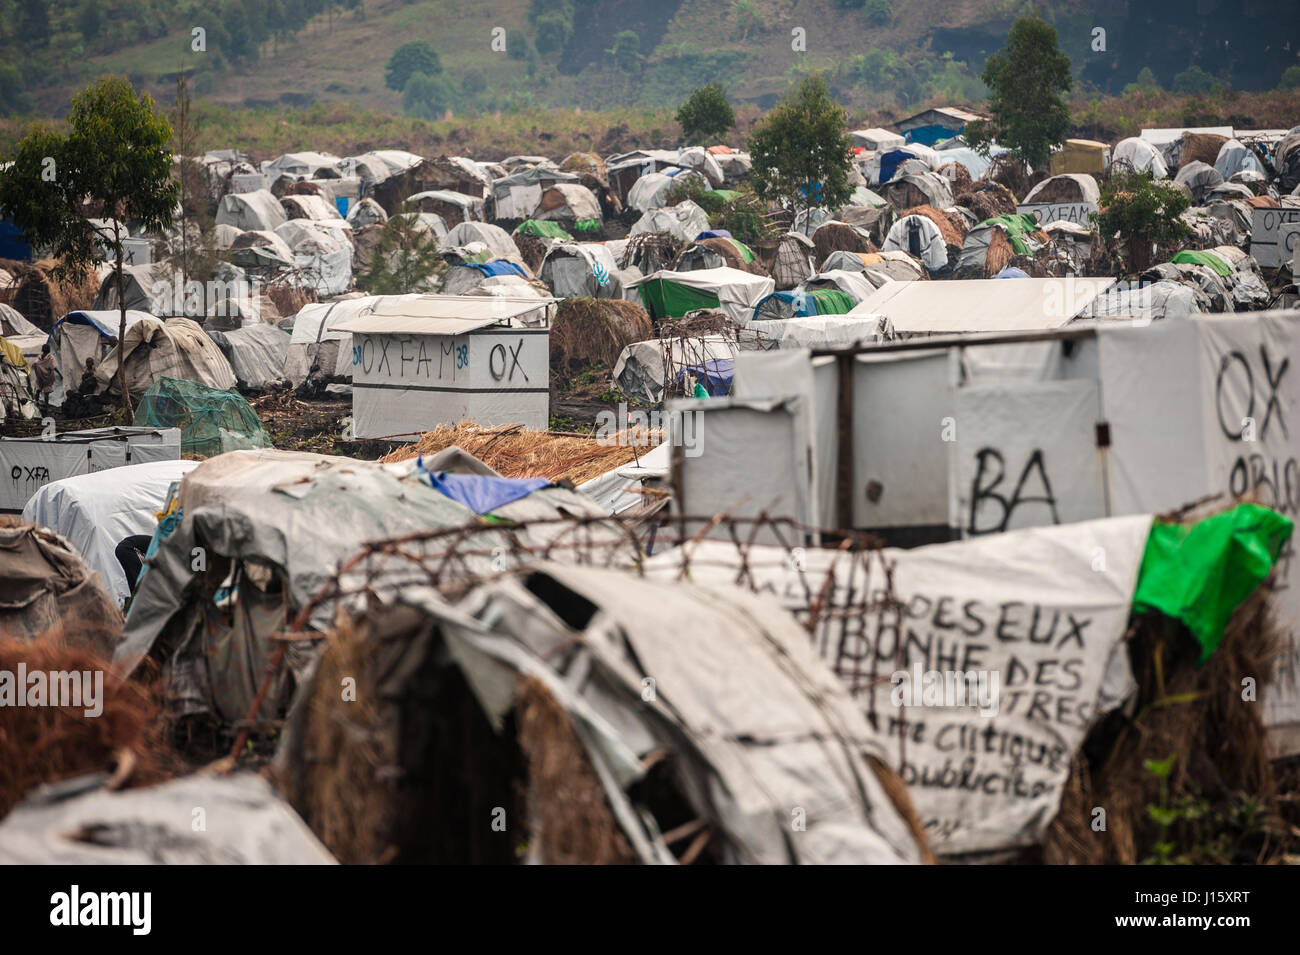 A camp for internally displaced persons (IDP) near Goma, eastern Democratic Republic of Congo - Stock Image